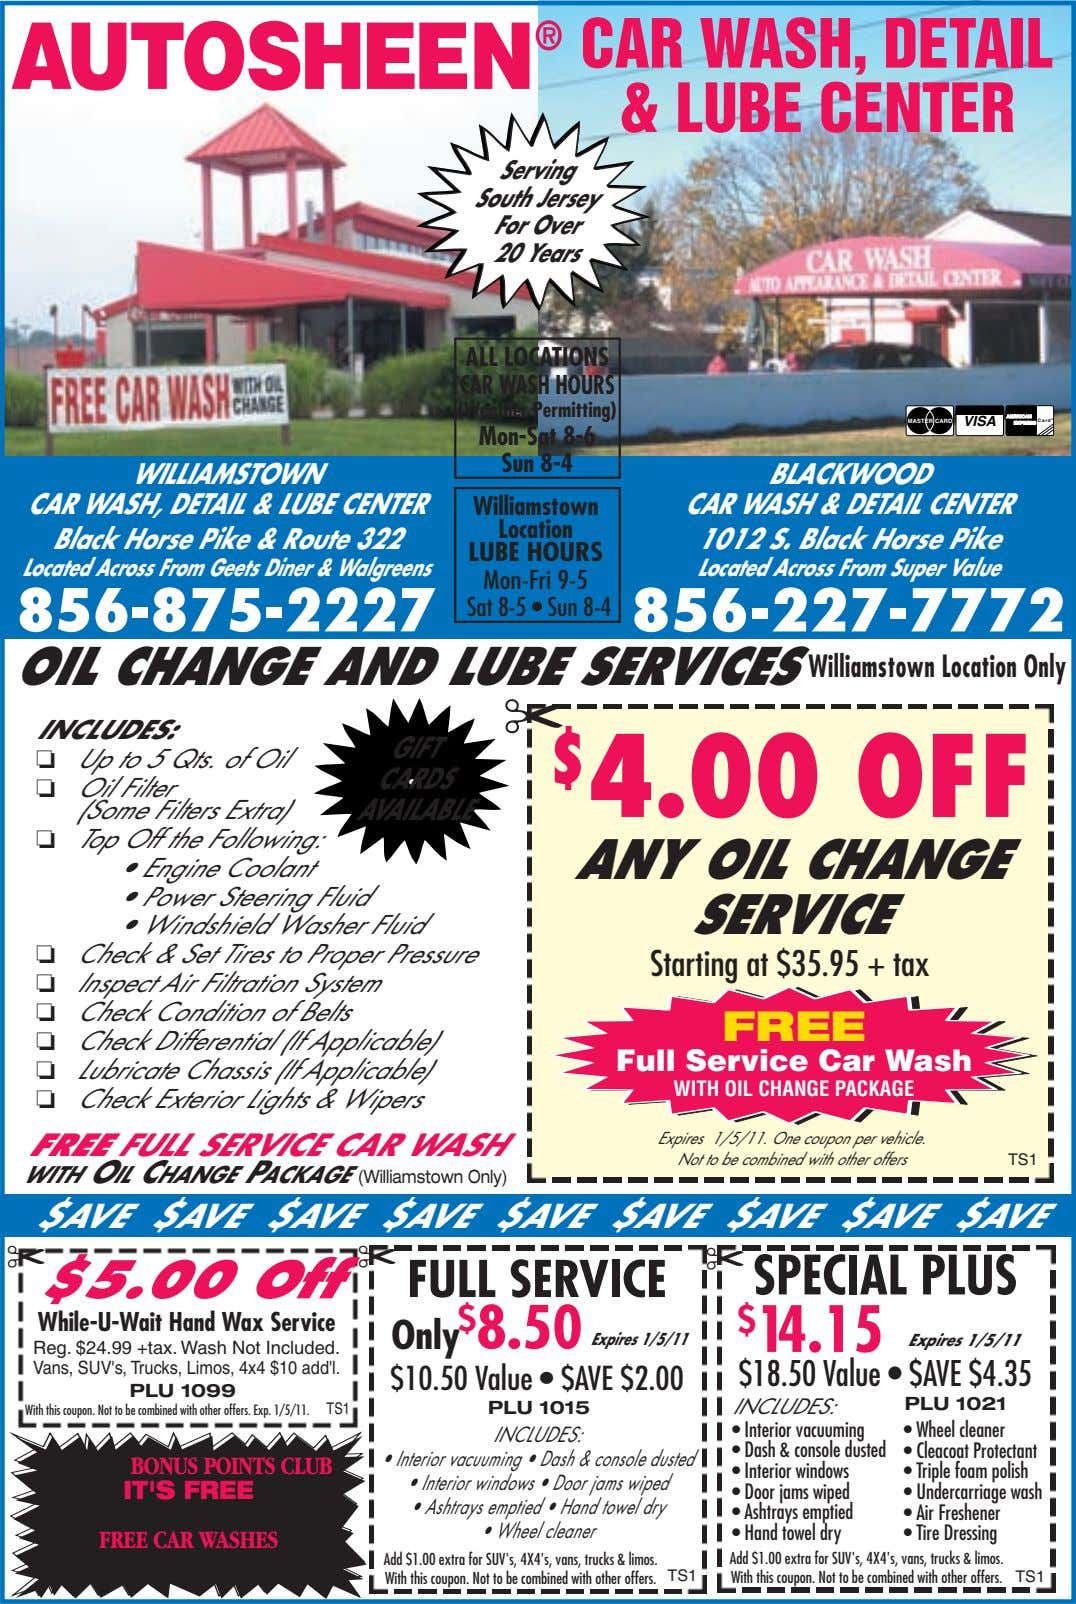 CAR WASH, DETAIL & LUBE CENTER Serving South Jersey For Over 20 Years ALL LOCATIONS CAR